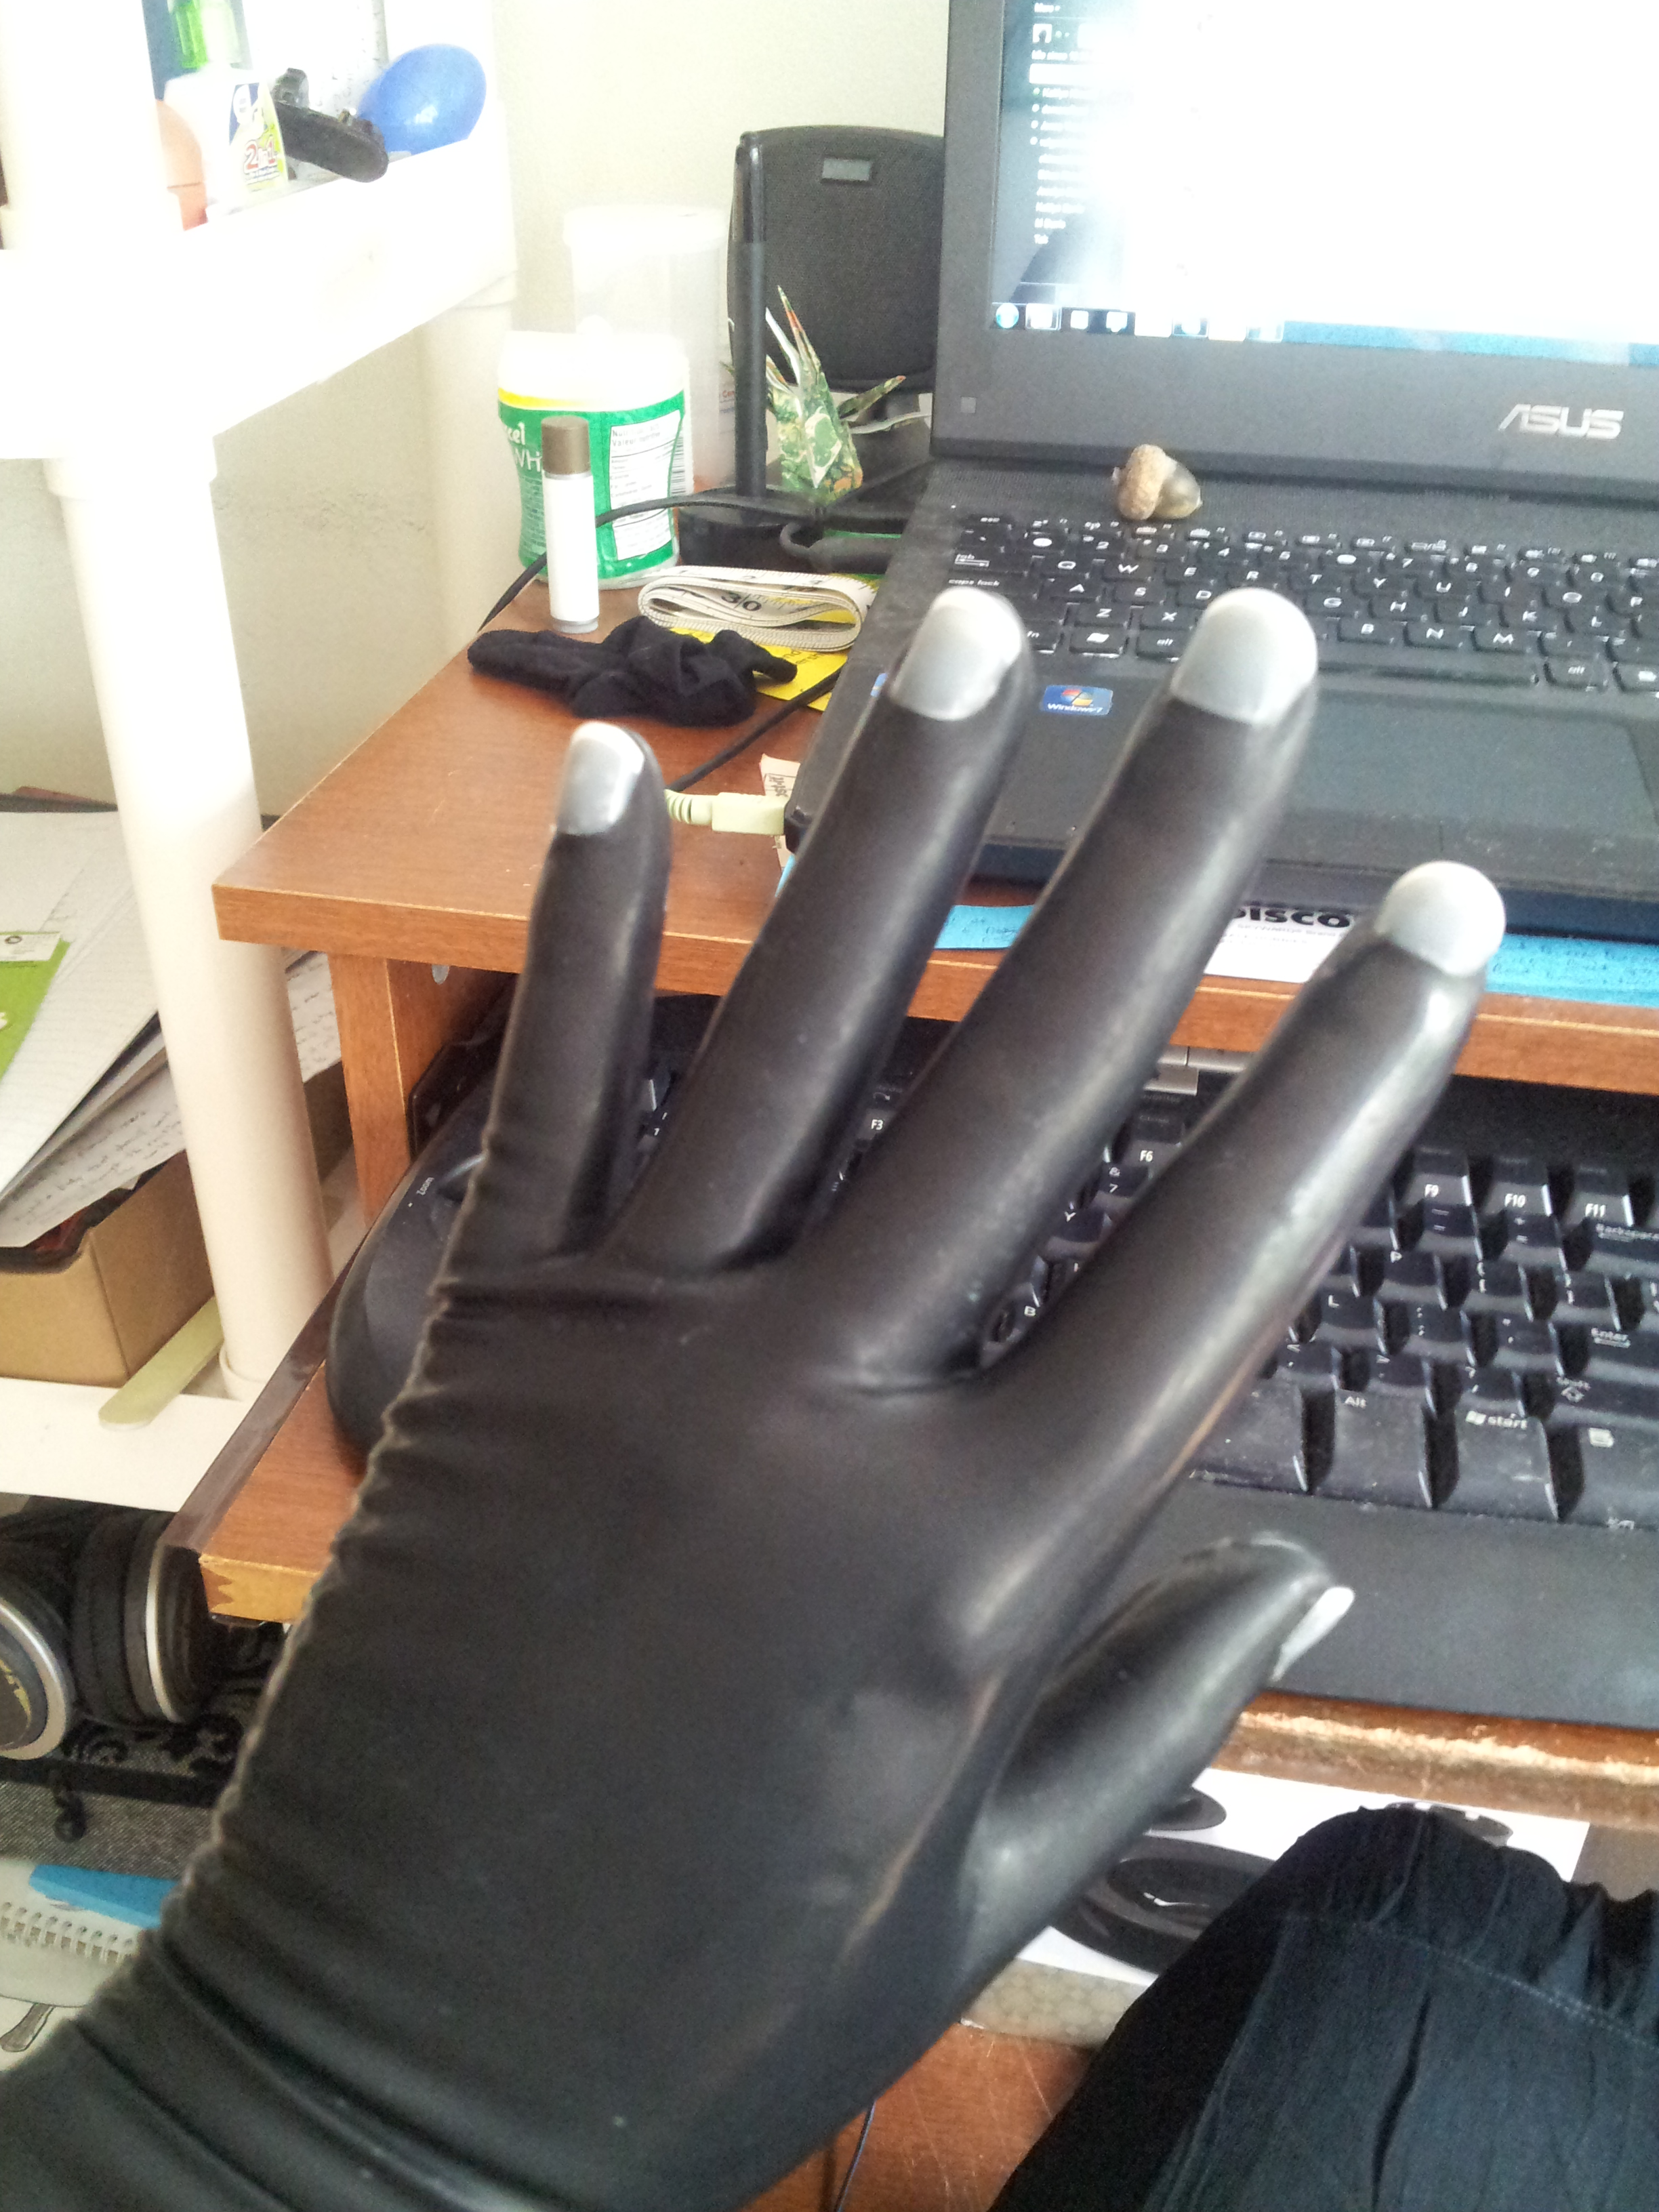 Black gloves with nails - Now We Trim And File The Nails To The Desired Shape Be Careful Of The Latex Gloves With Your Clippers Scissors File You Don T Want To Put Holes In Them